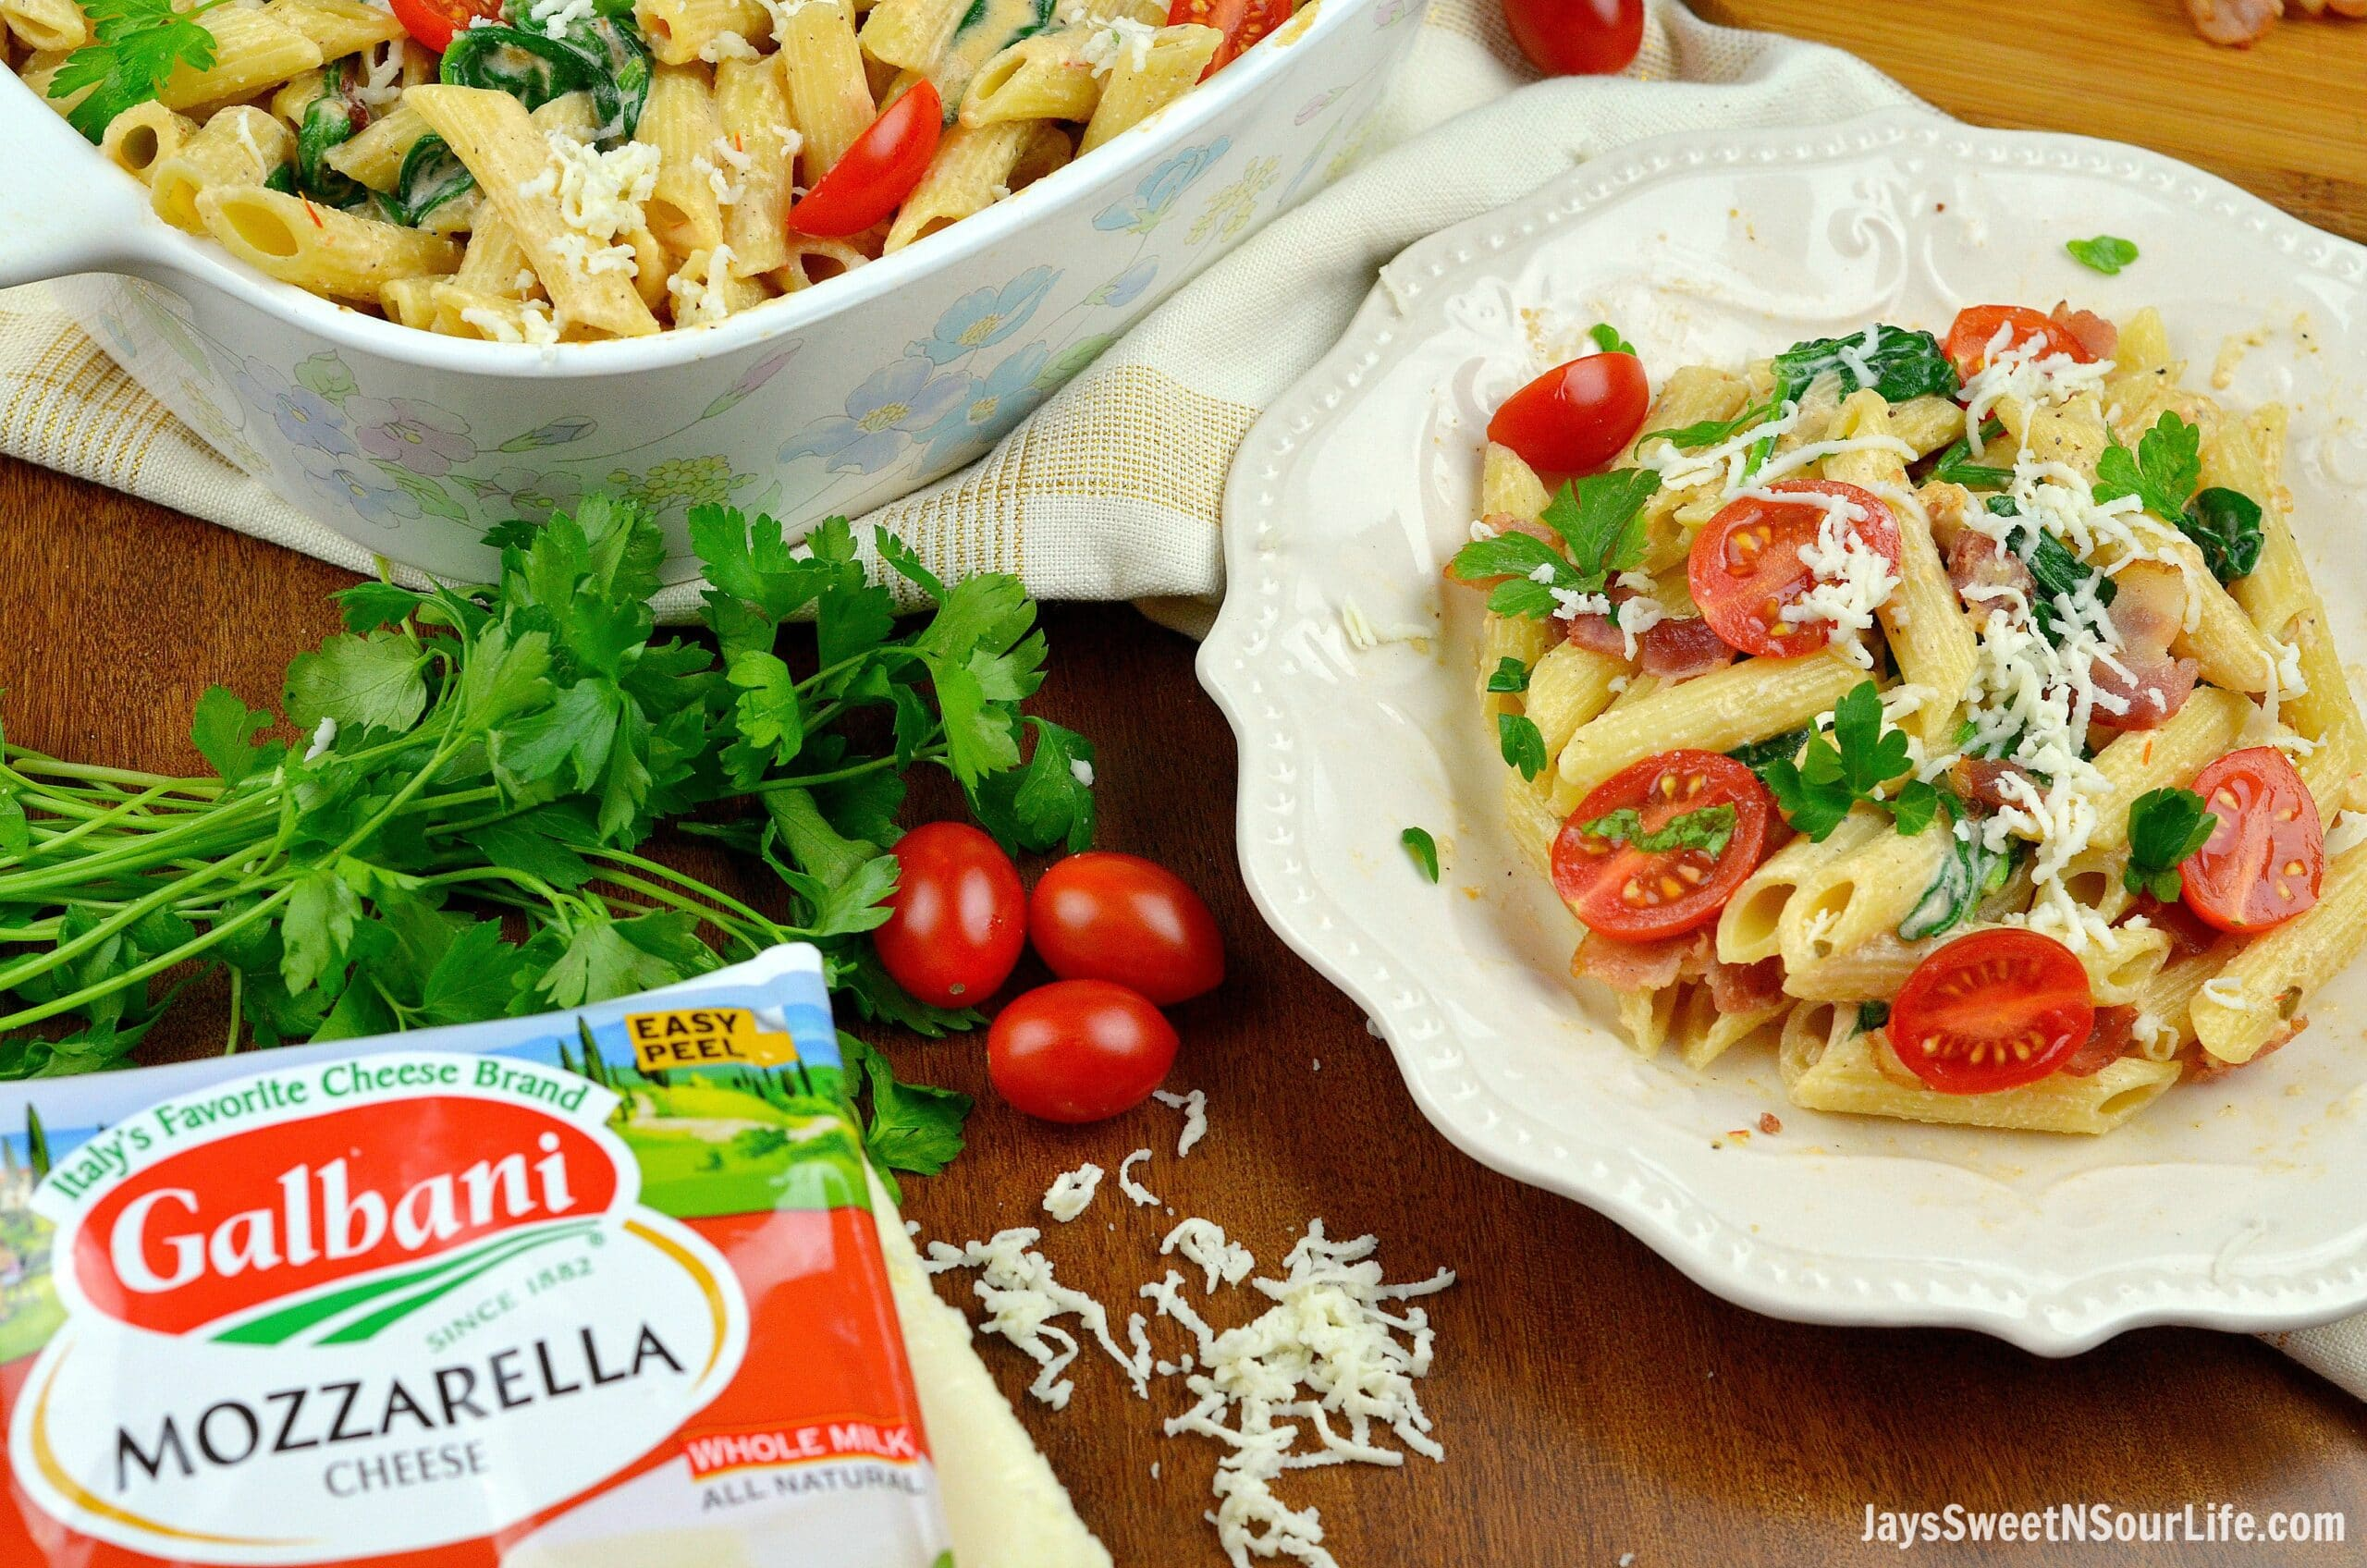 Cheesy Bacon and Spinach Penne Pasta Plated. Treat your family this holiday season with a deliciously easy to make Cheesy Bacon and Spinach Penne Pasta. Perfect for any dinner time during the year. Shared via Jays Sweet N Sour Life.